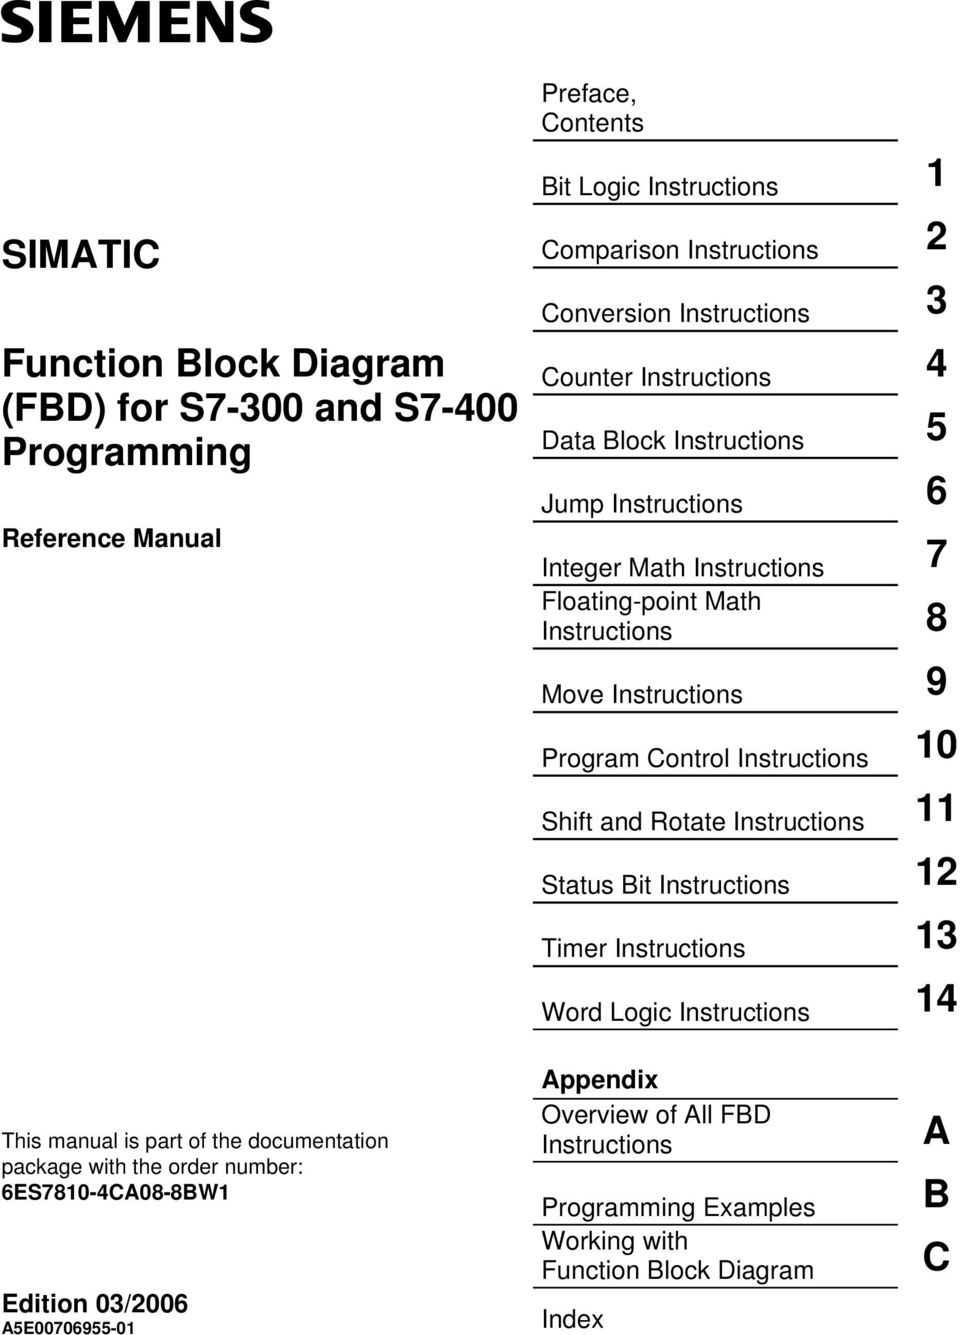 SIMATIC  Function Block Diagram (FBD) for S7-300 and S7-400